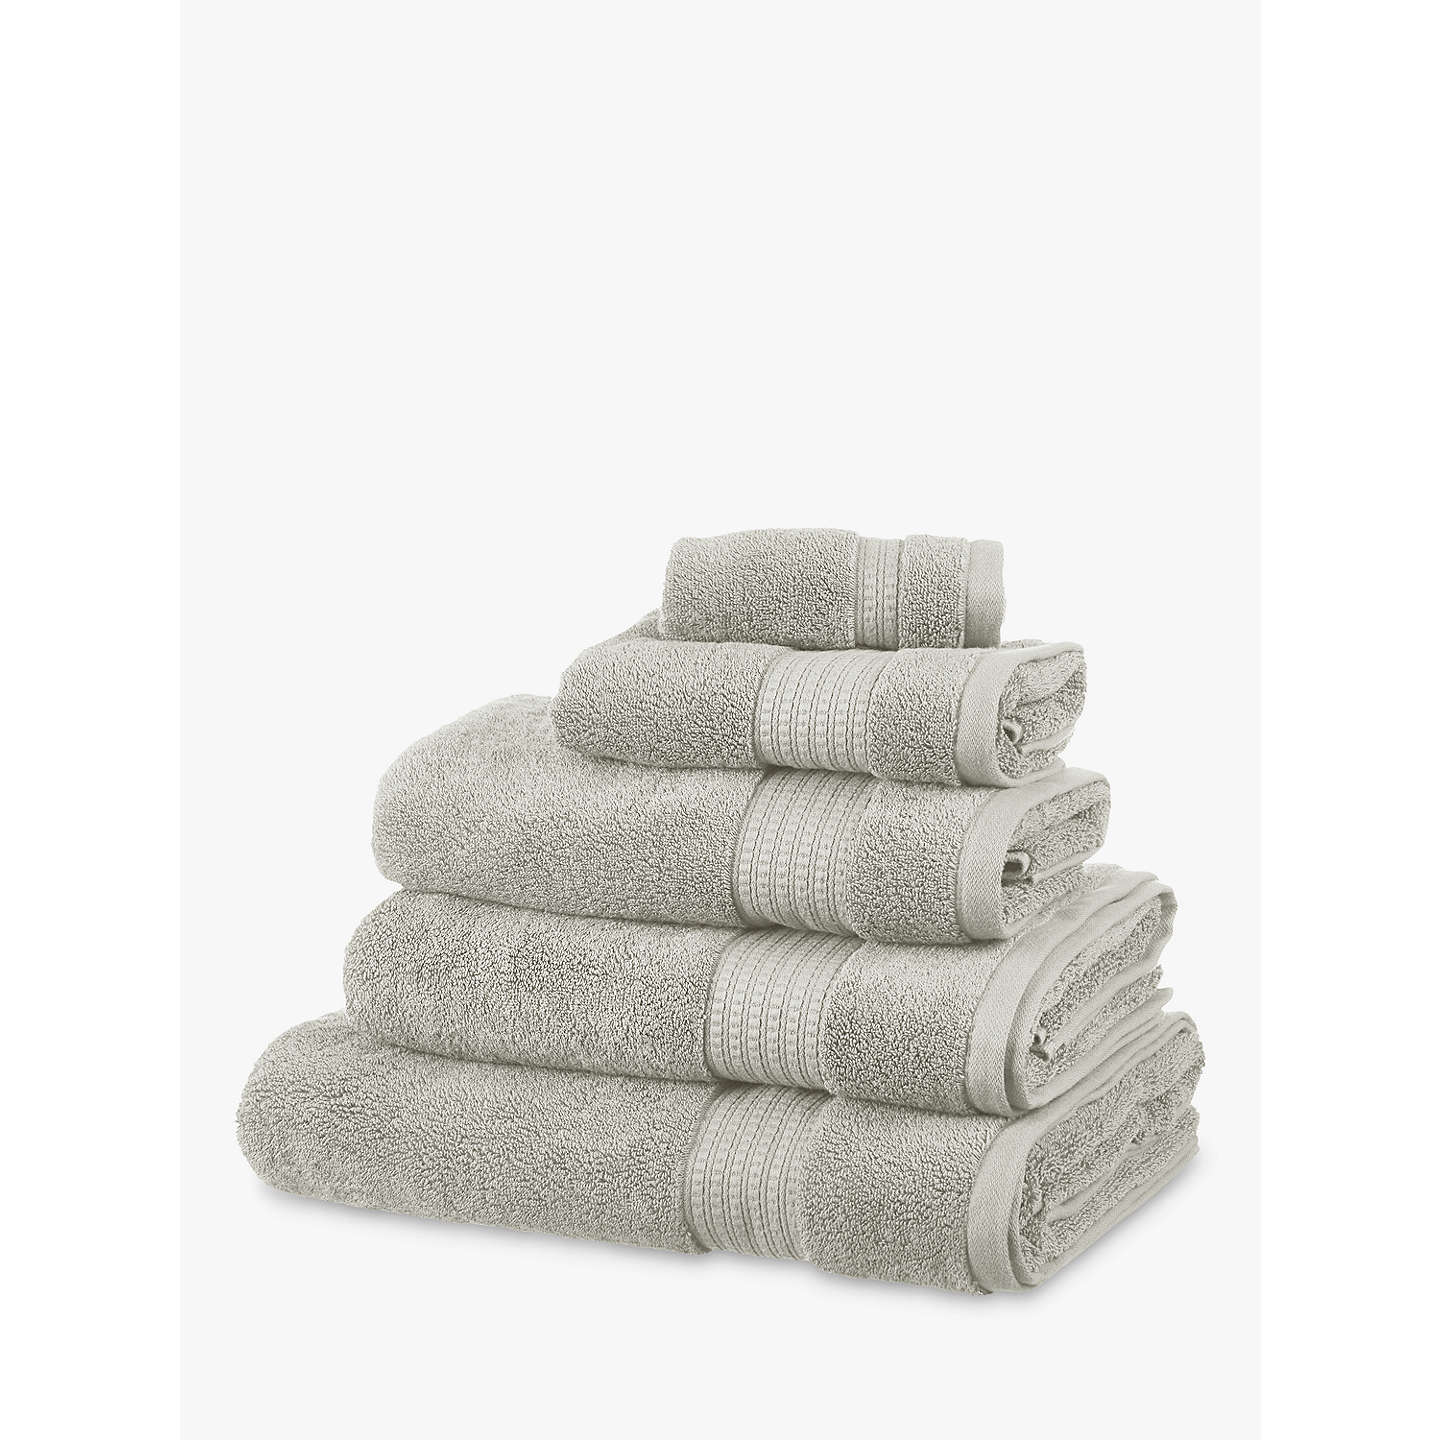 BuyJohn Lewis Supima Cotton Face Cloth, Pack of 2,Silver Grey Online at johnlewis.com